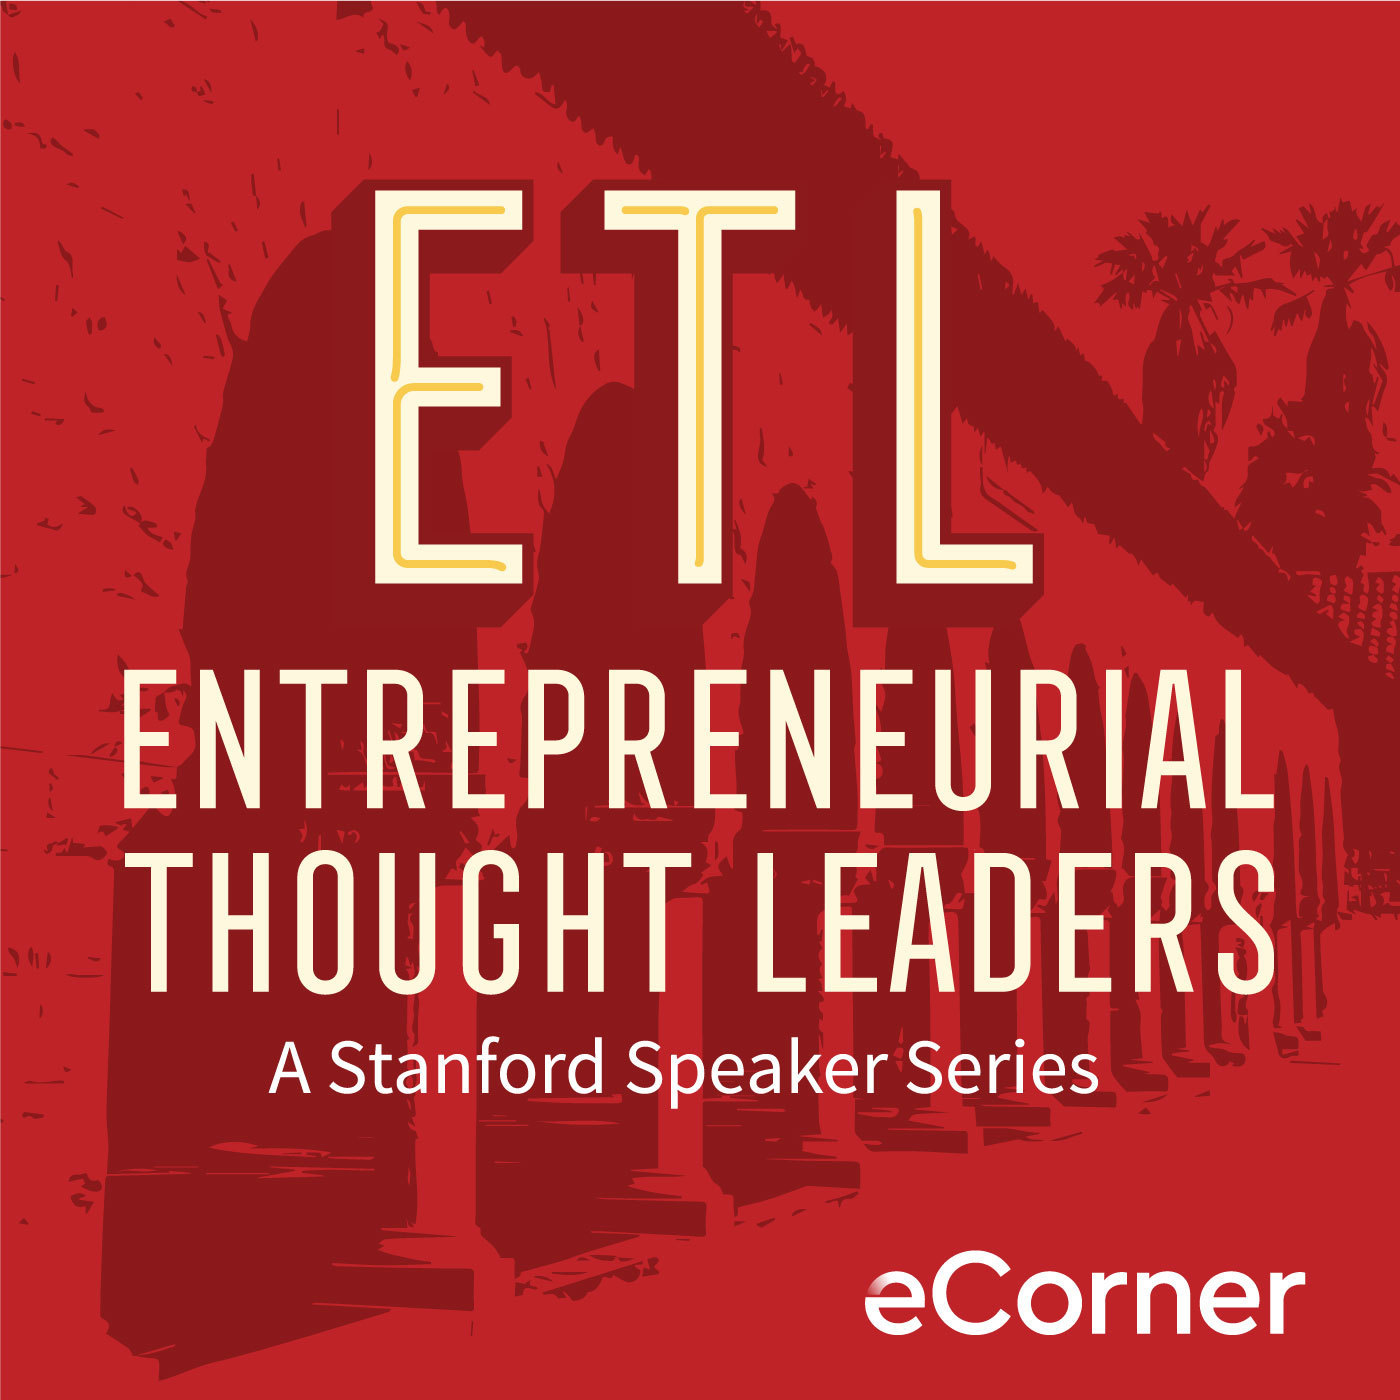 Podcast Cover of Entrepreneurial Thought Leaders